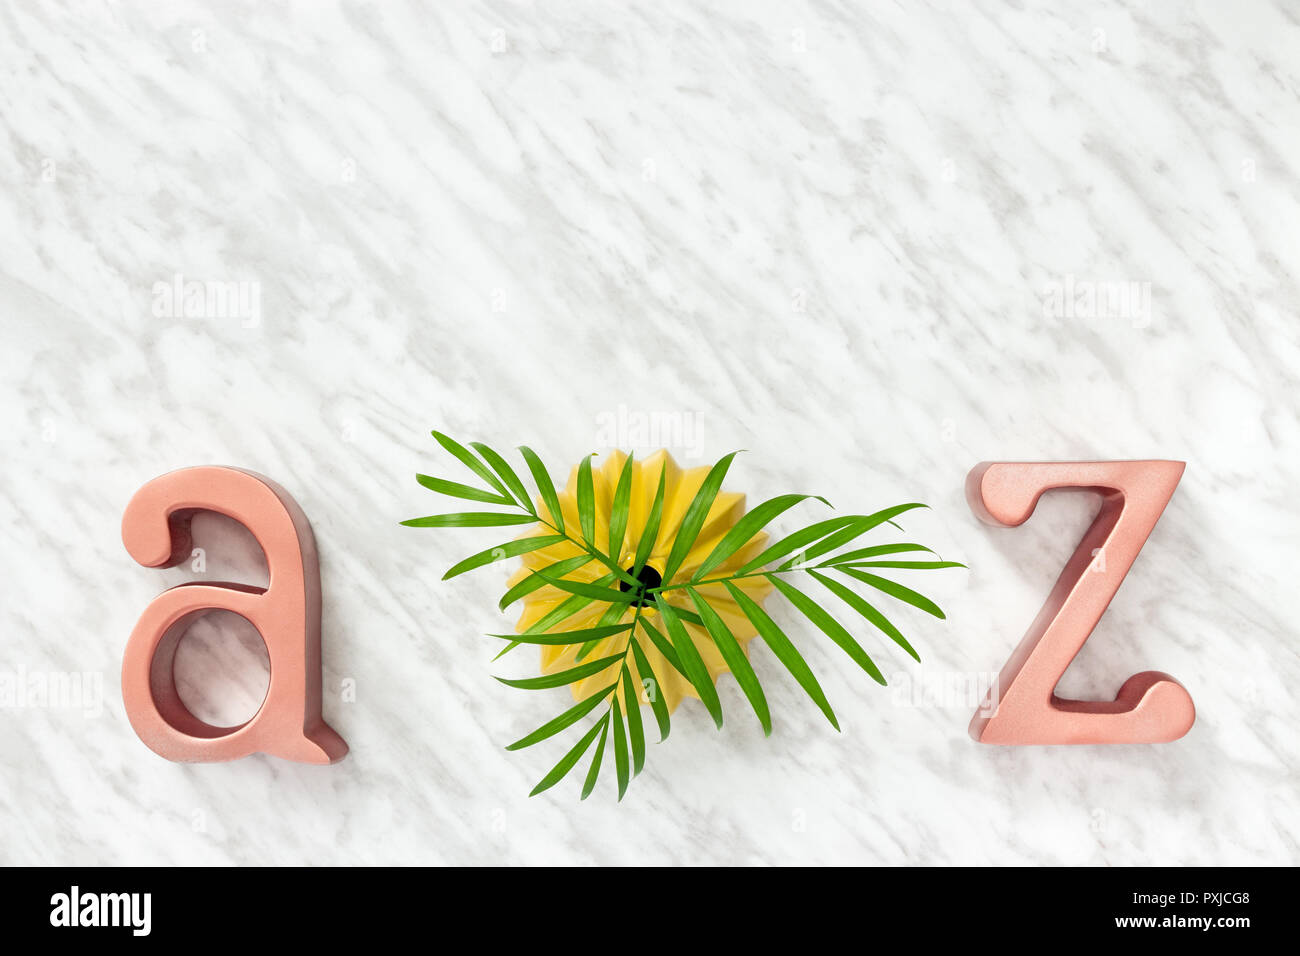 Metal letters A and Z, and green palm leaves in a yellow ceramic vase, on marble background. - Stock Image